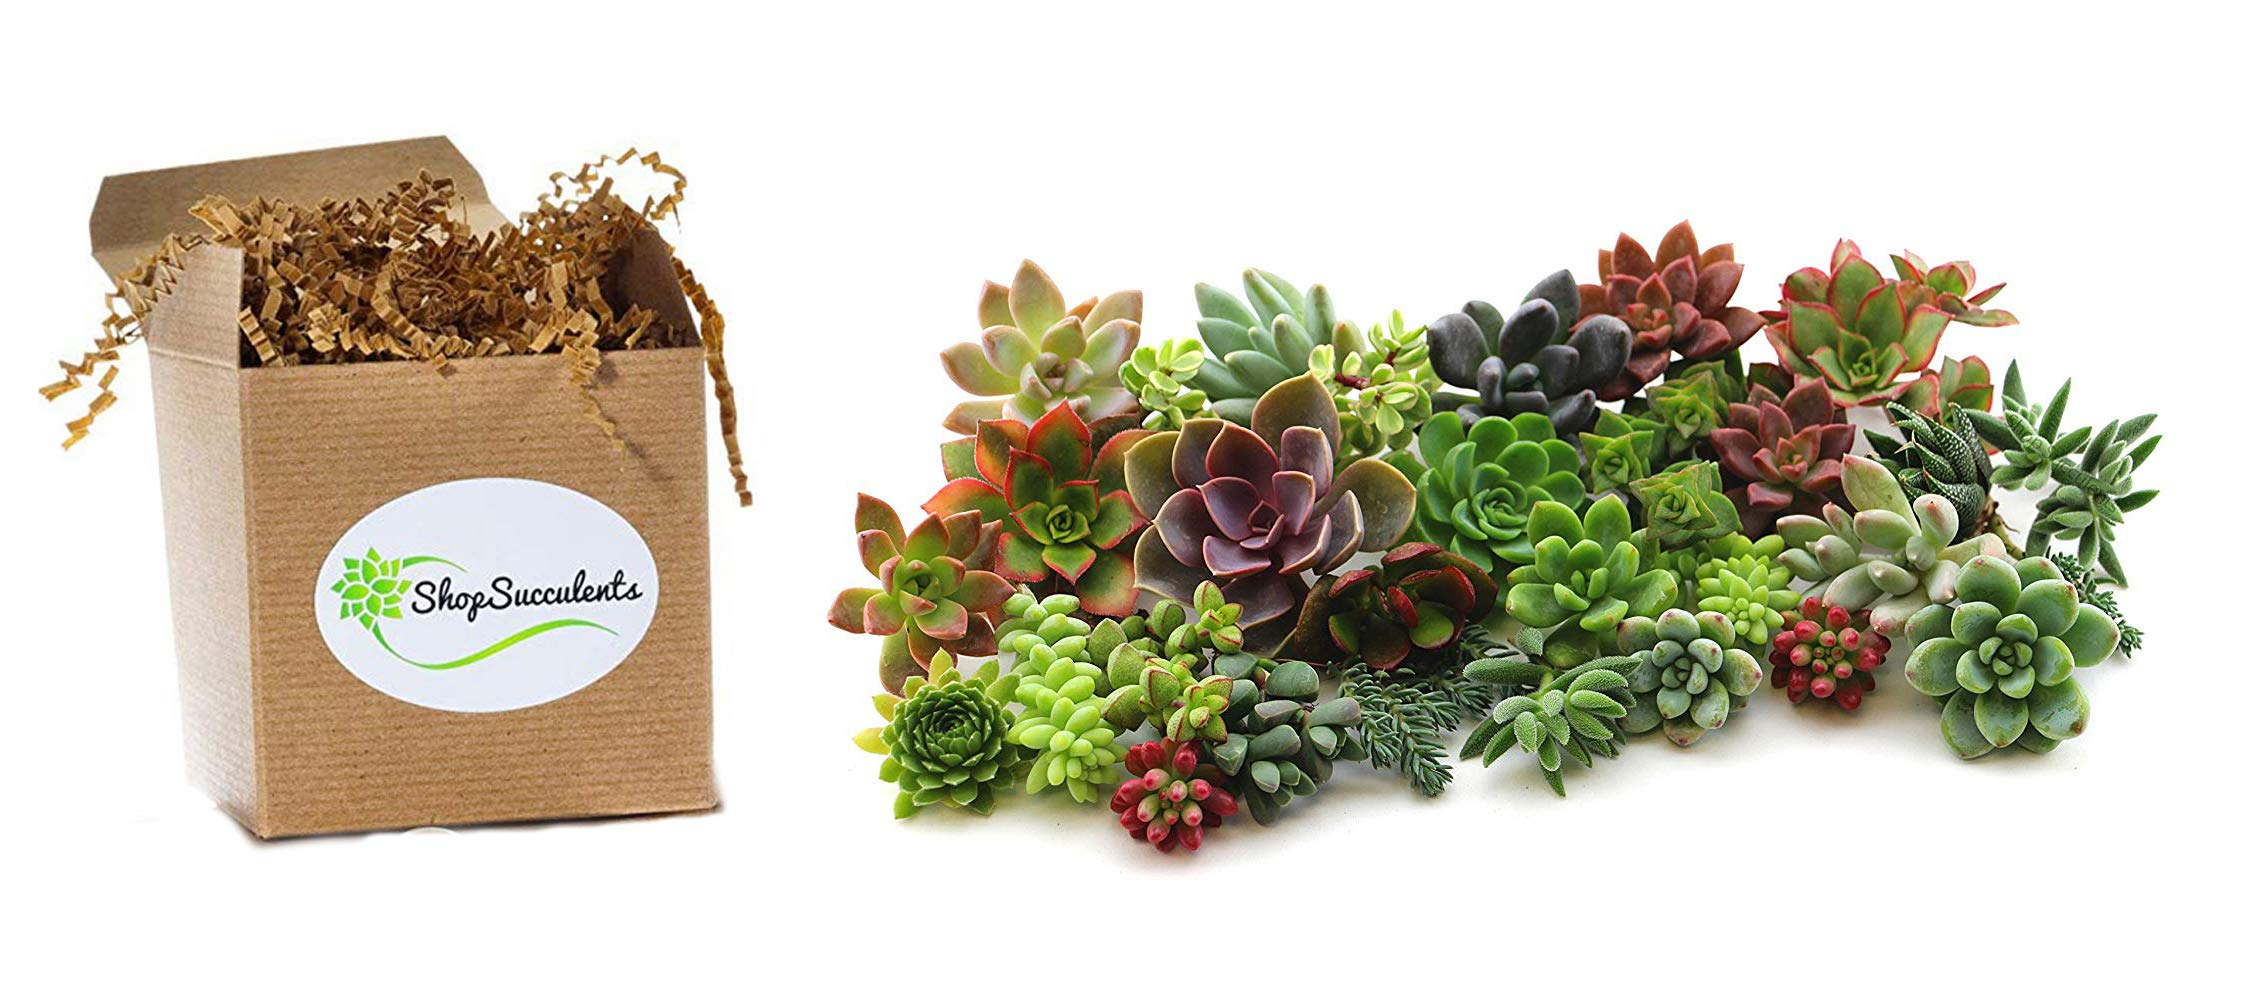 Shop Succulents   Assorted Collection of Live Succulent Cuttings, Hand Selected Variety Pack of Cut Succulents   Collection of 30 by Shop Succulents